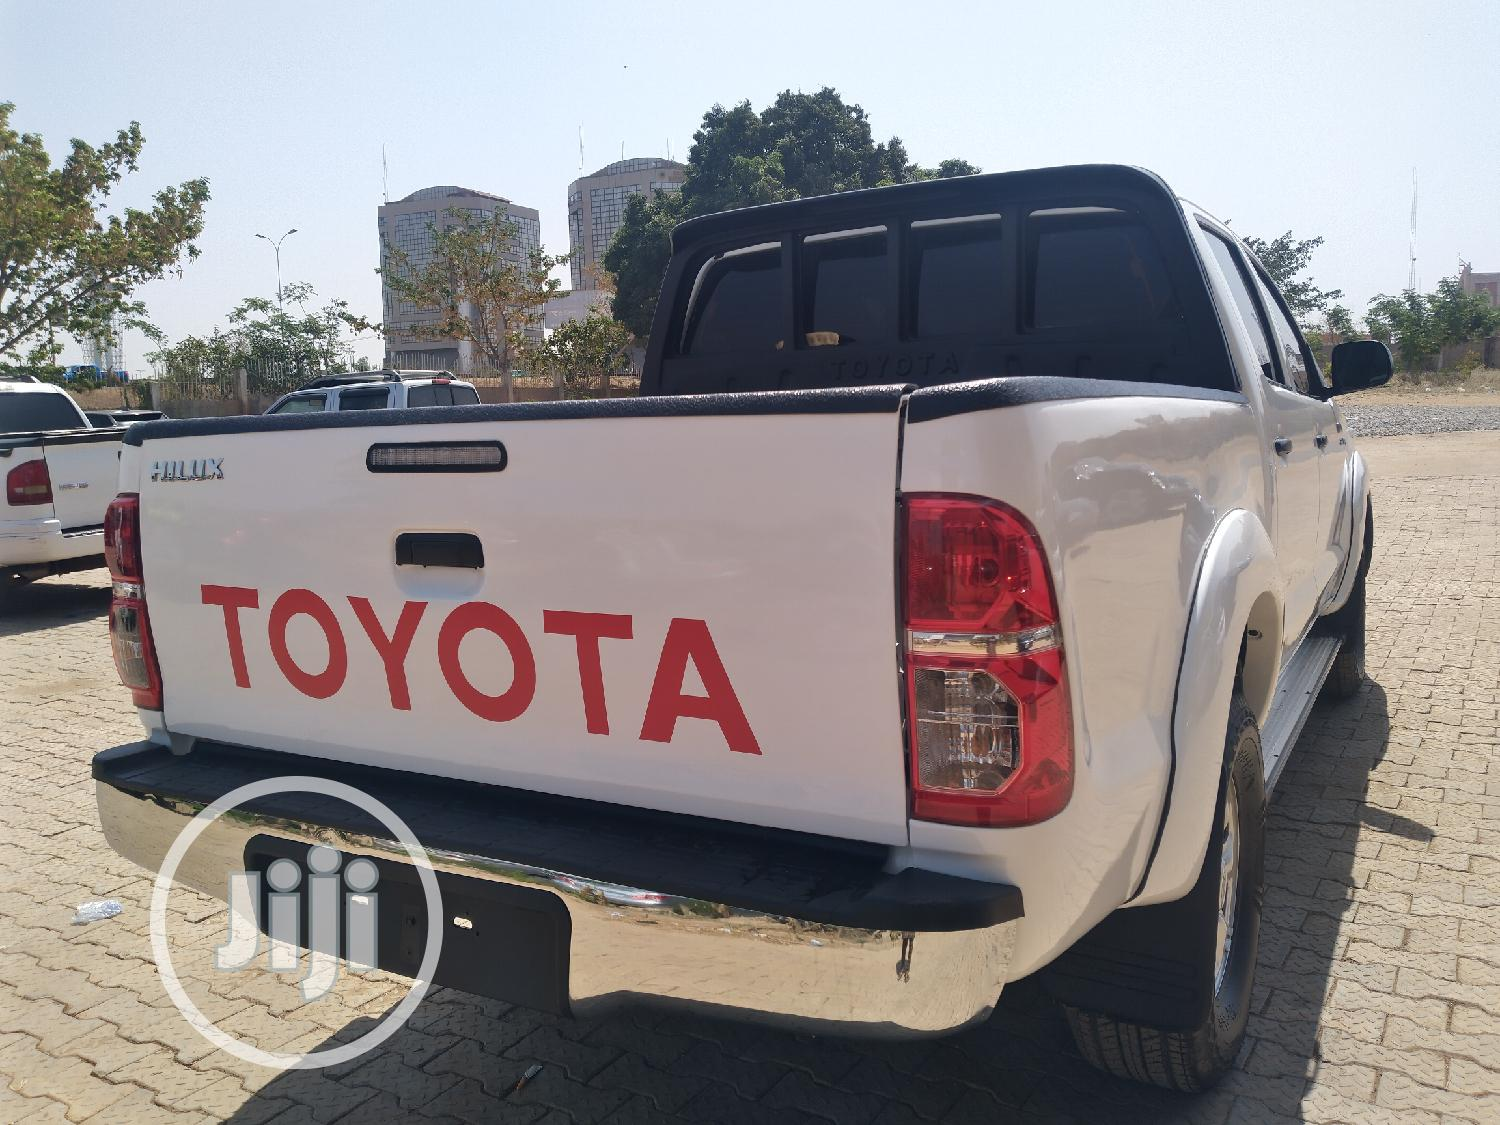 Toyota Hilux 2012 2.0 VVT-i SRX White   Cars for sale in Central Business Dis, Abuja (FCT) State, Nigeria